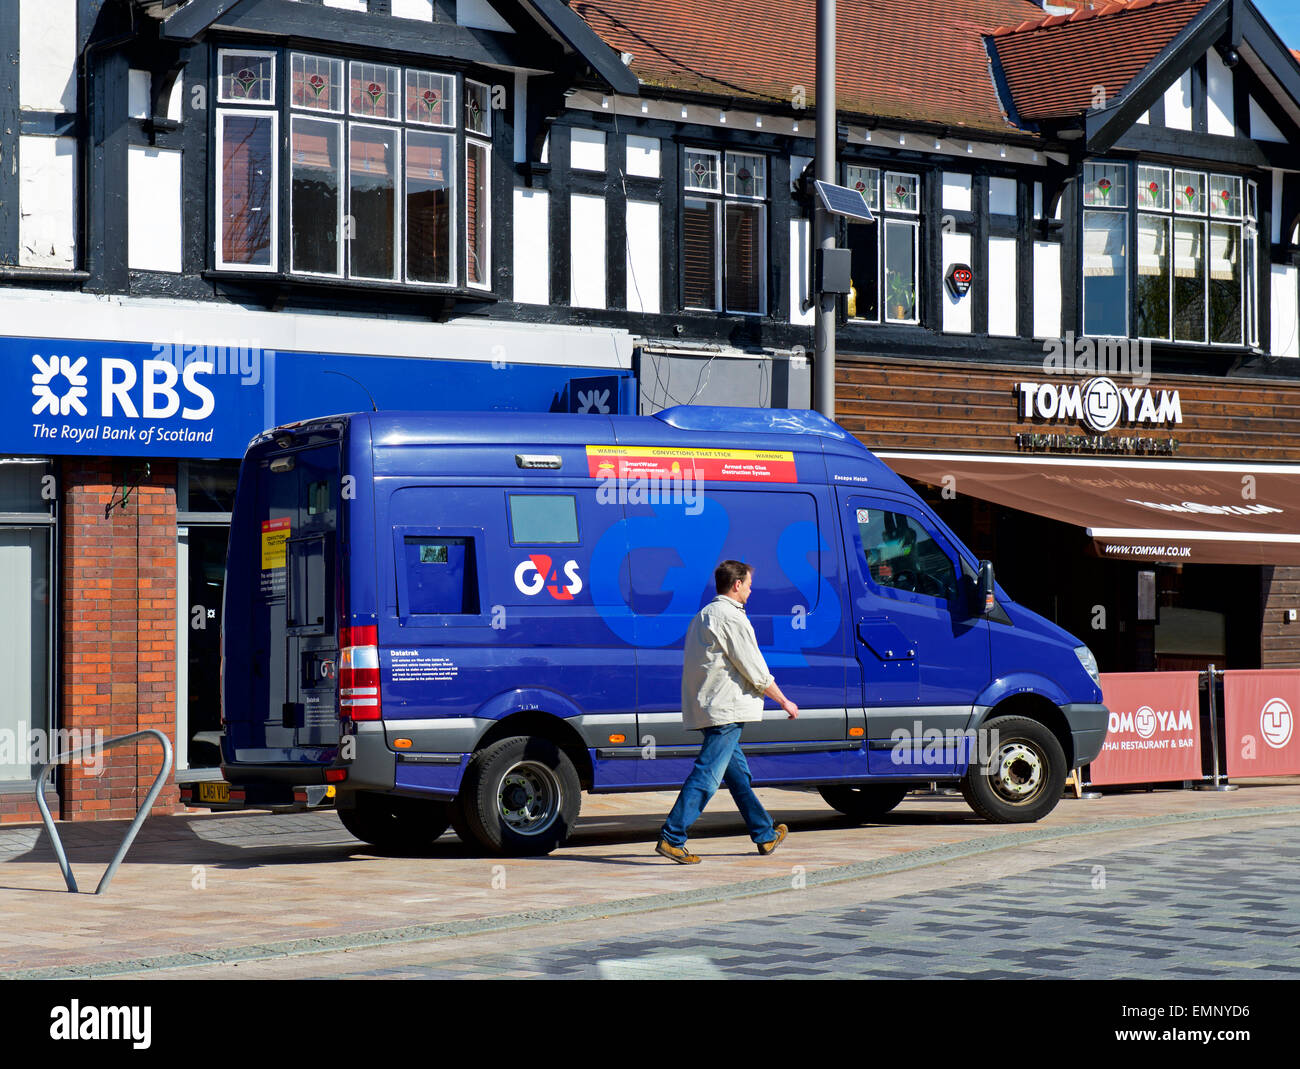 G4S van parked outside RBS, Poynton, Cheshire, England UK - Stock Image